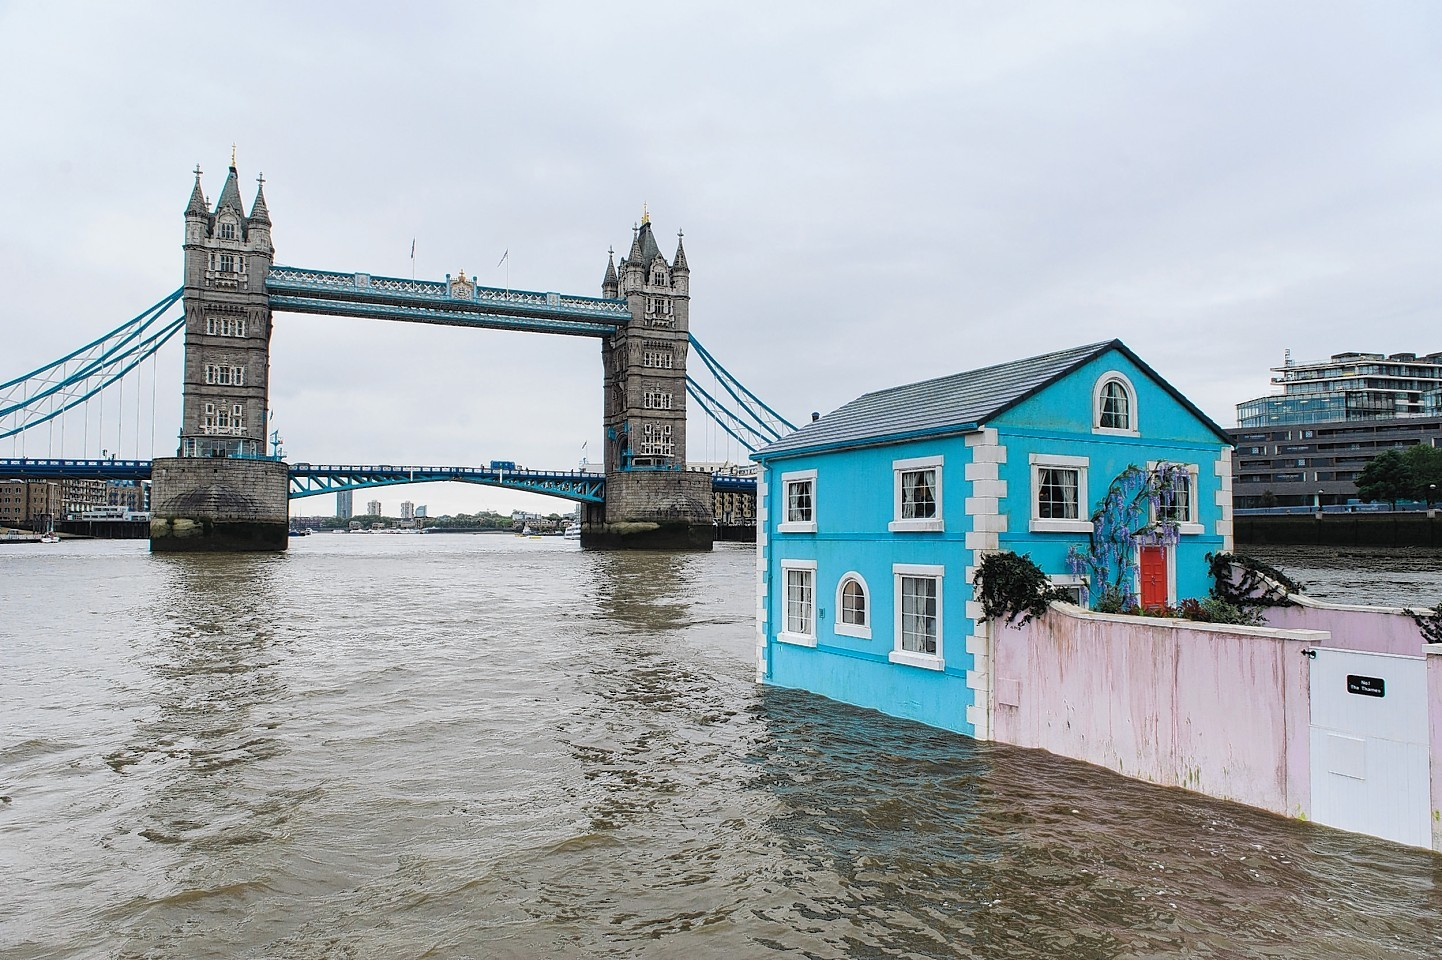 A fully functioning floating house passes Tower Bridge as it travels up the River Thames.